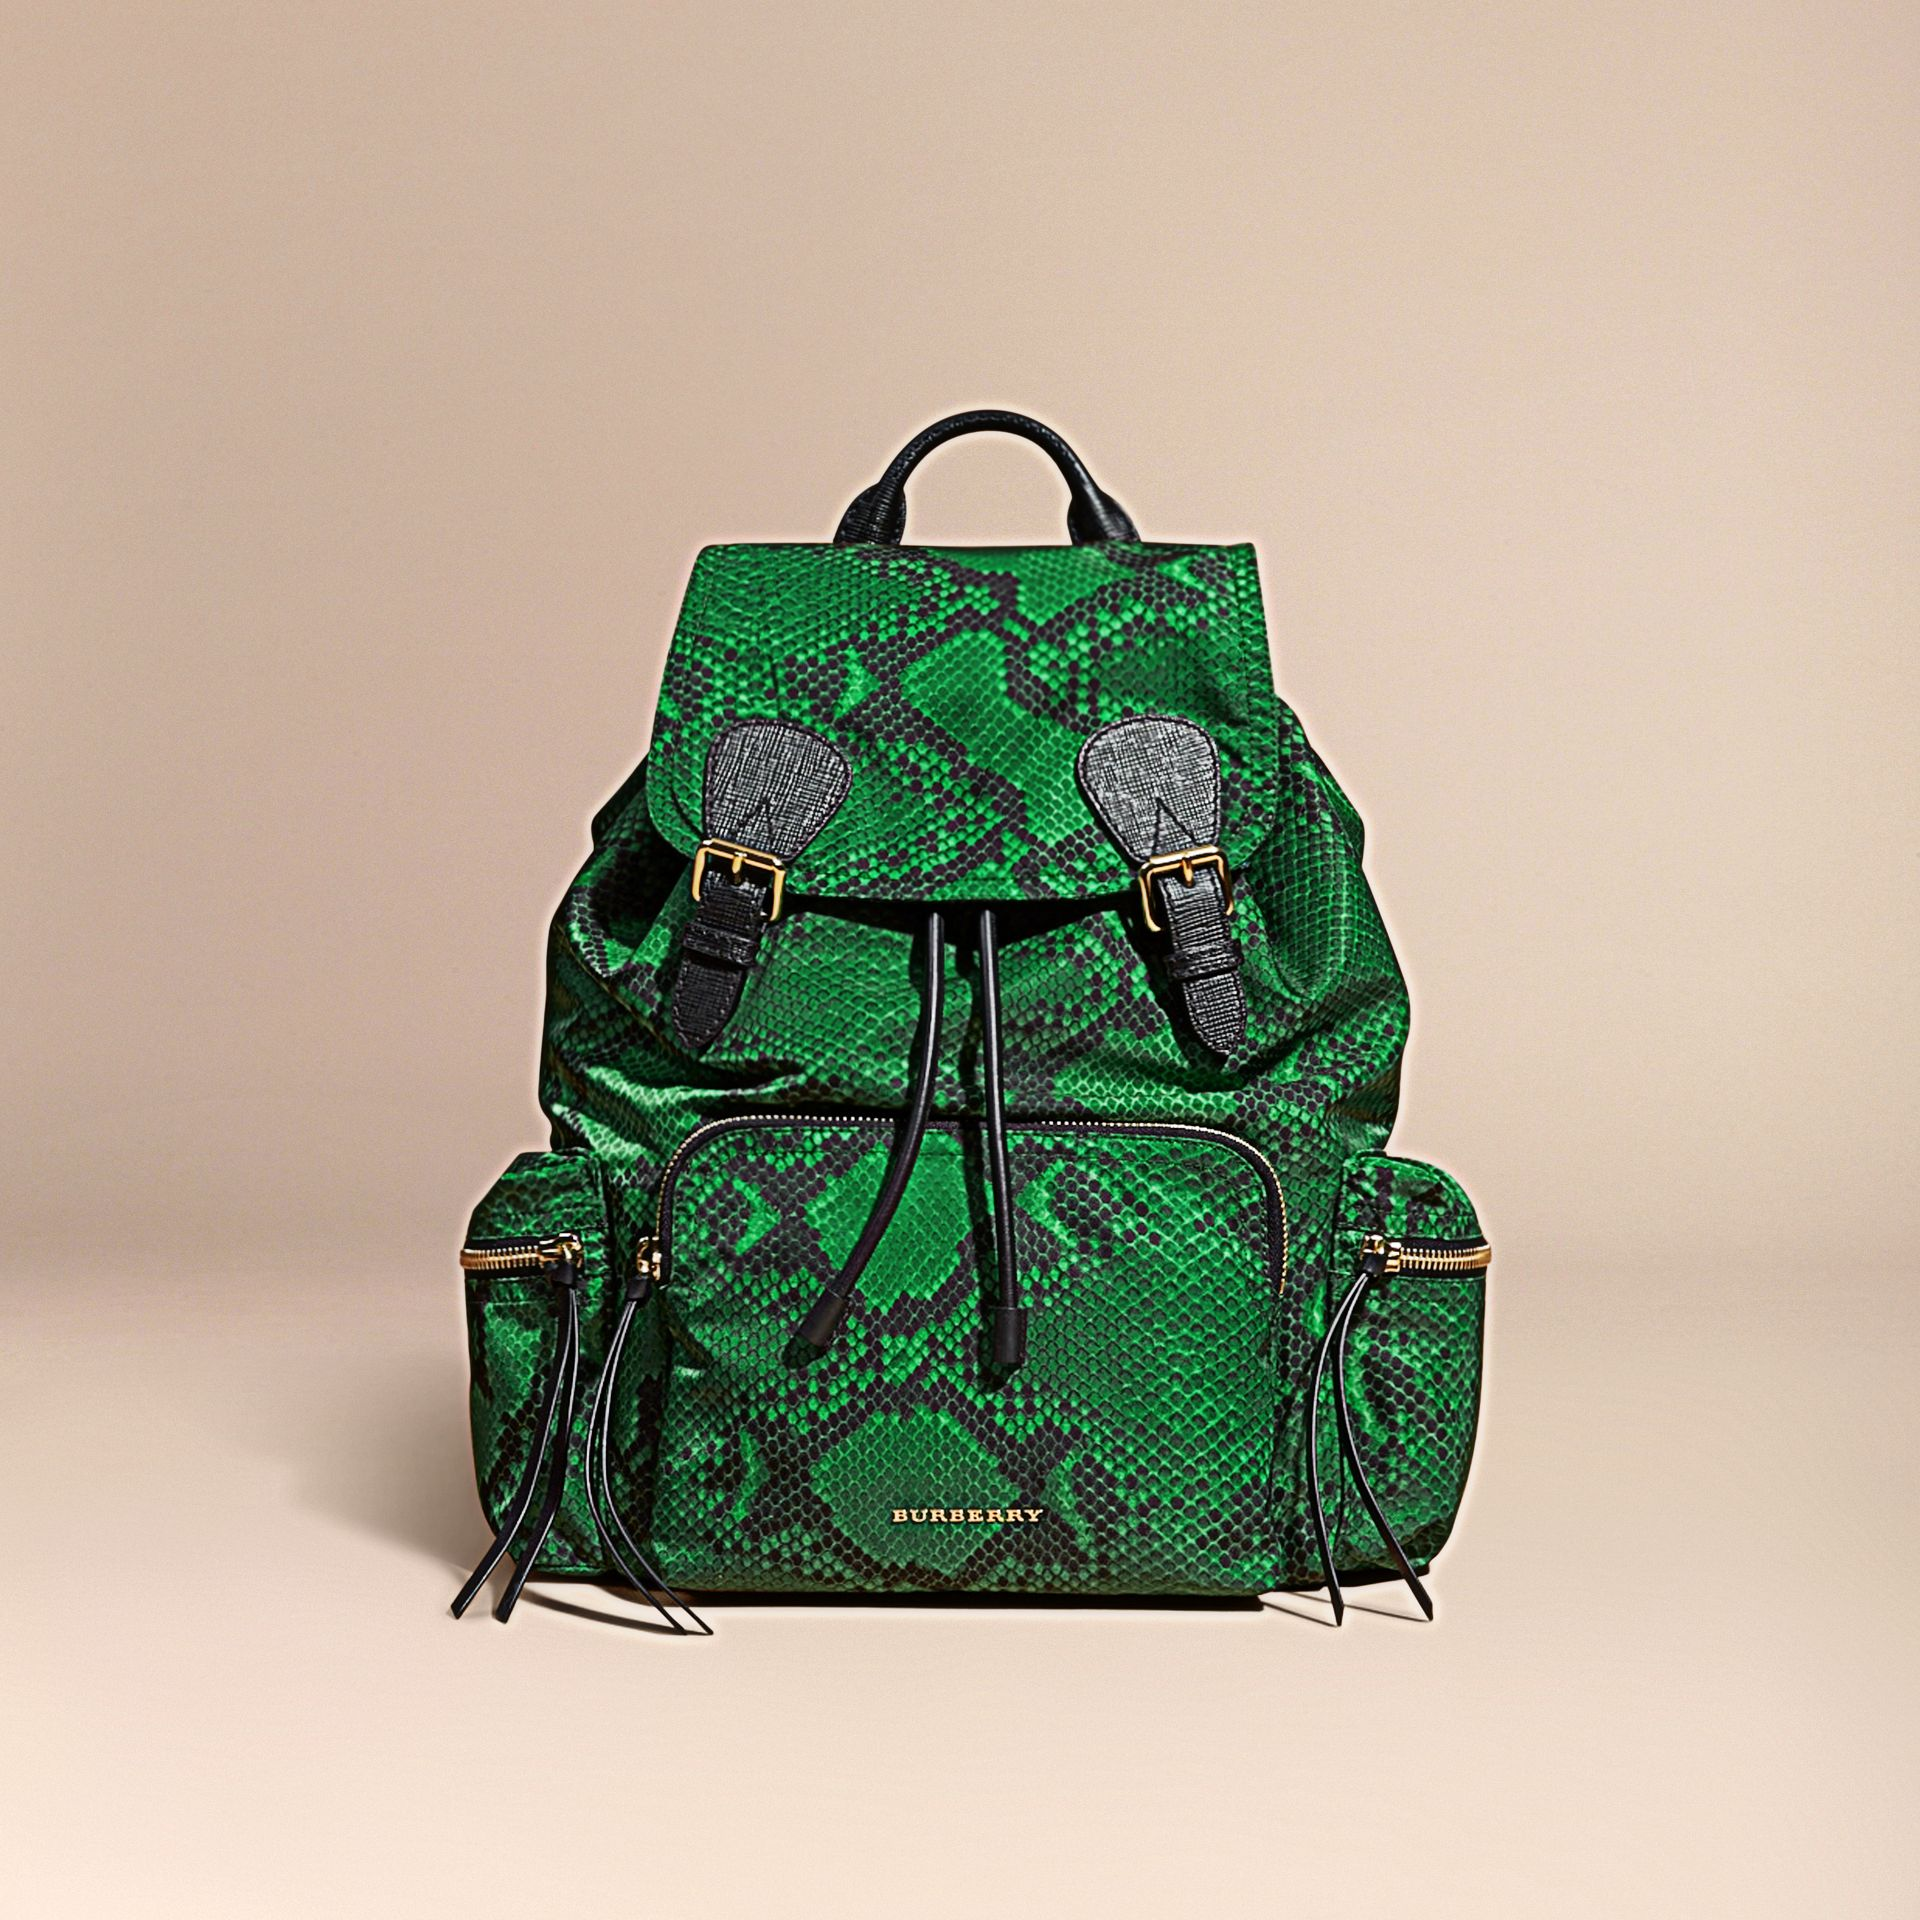 Grand sac The Rucksack en nylon à imprimé python et cuir Vert - photo de la galerie 8